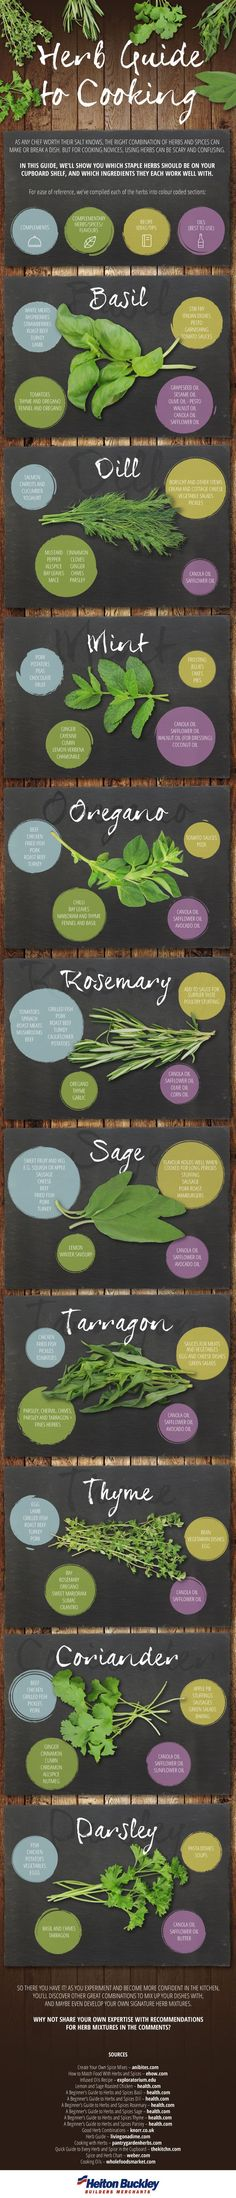 Herb Guide To Cooking - Perfect for those fresh summer herbs and a lifelong guide for how to grasp the perfect complementary flavors and recipes! #infographic #cooking #herbs